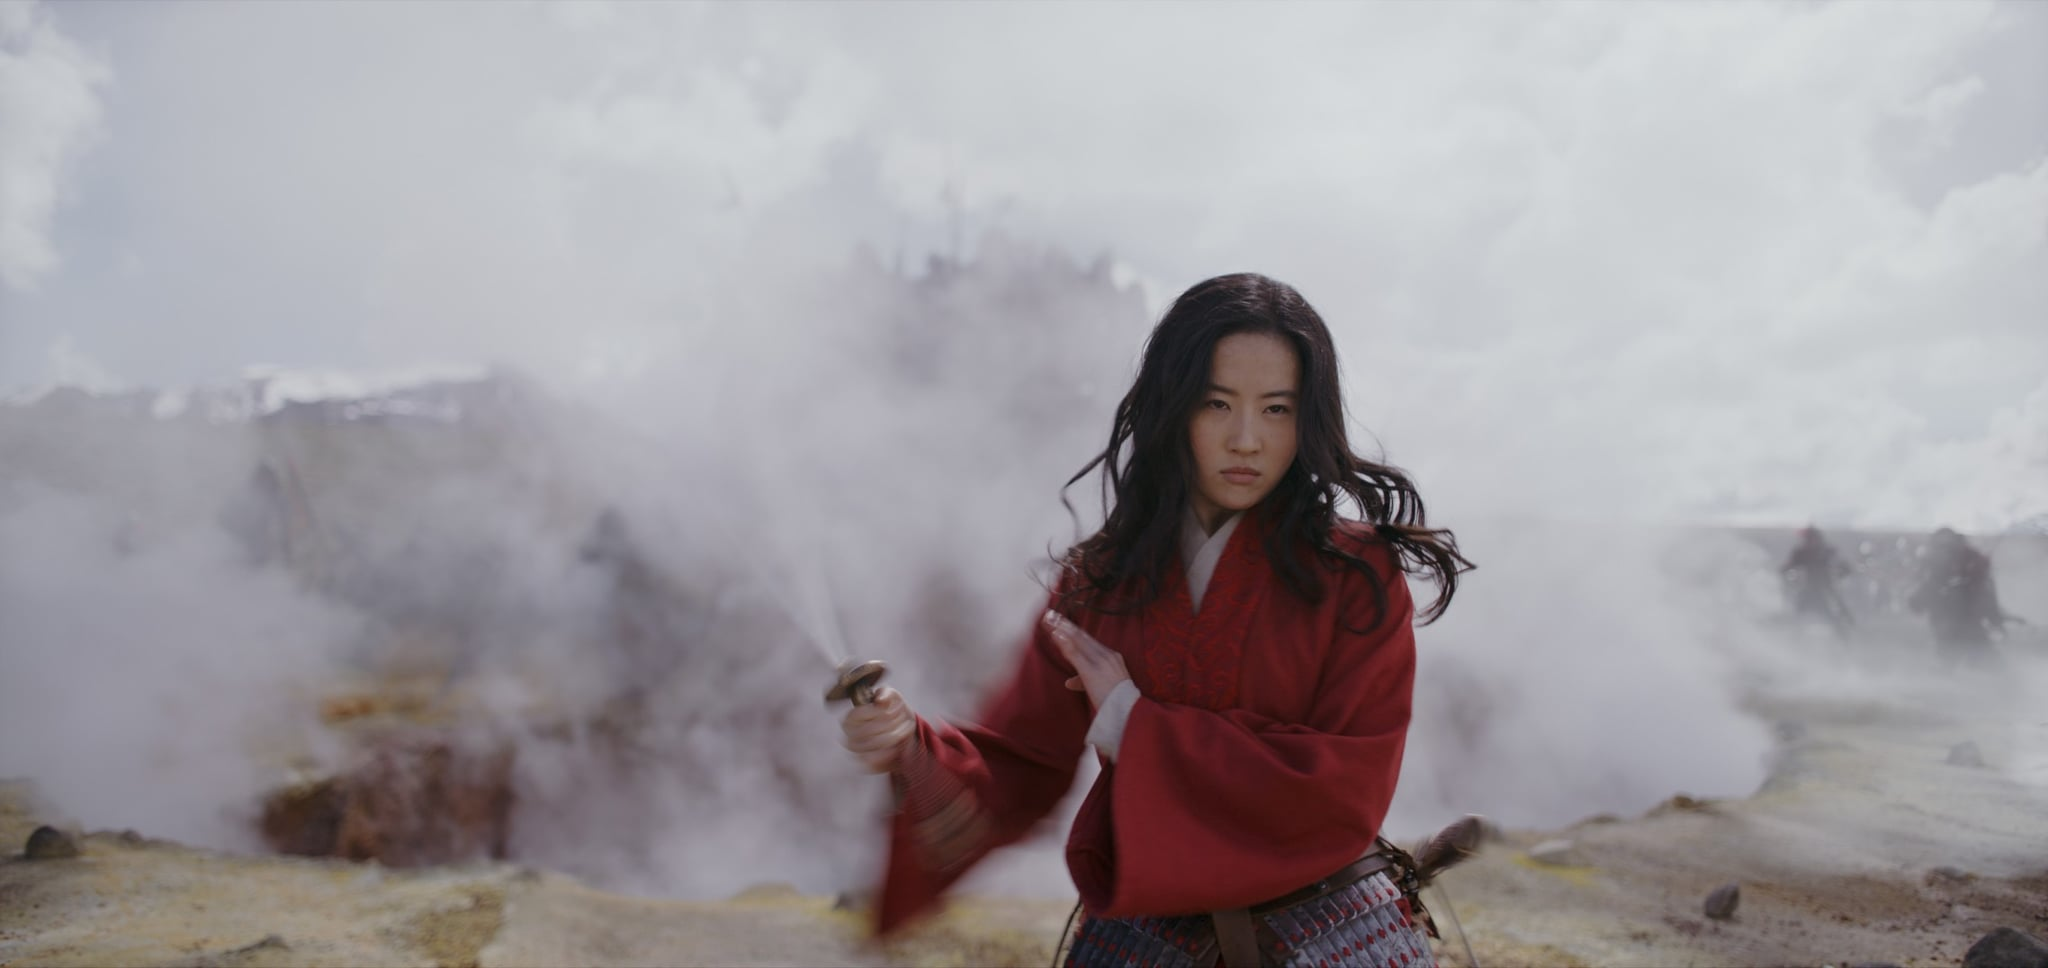 MULAN, Yifei Liu, 2020.  Walt Disney Studios Motion Pictures / Courtesy Everett Collection